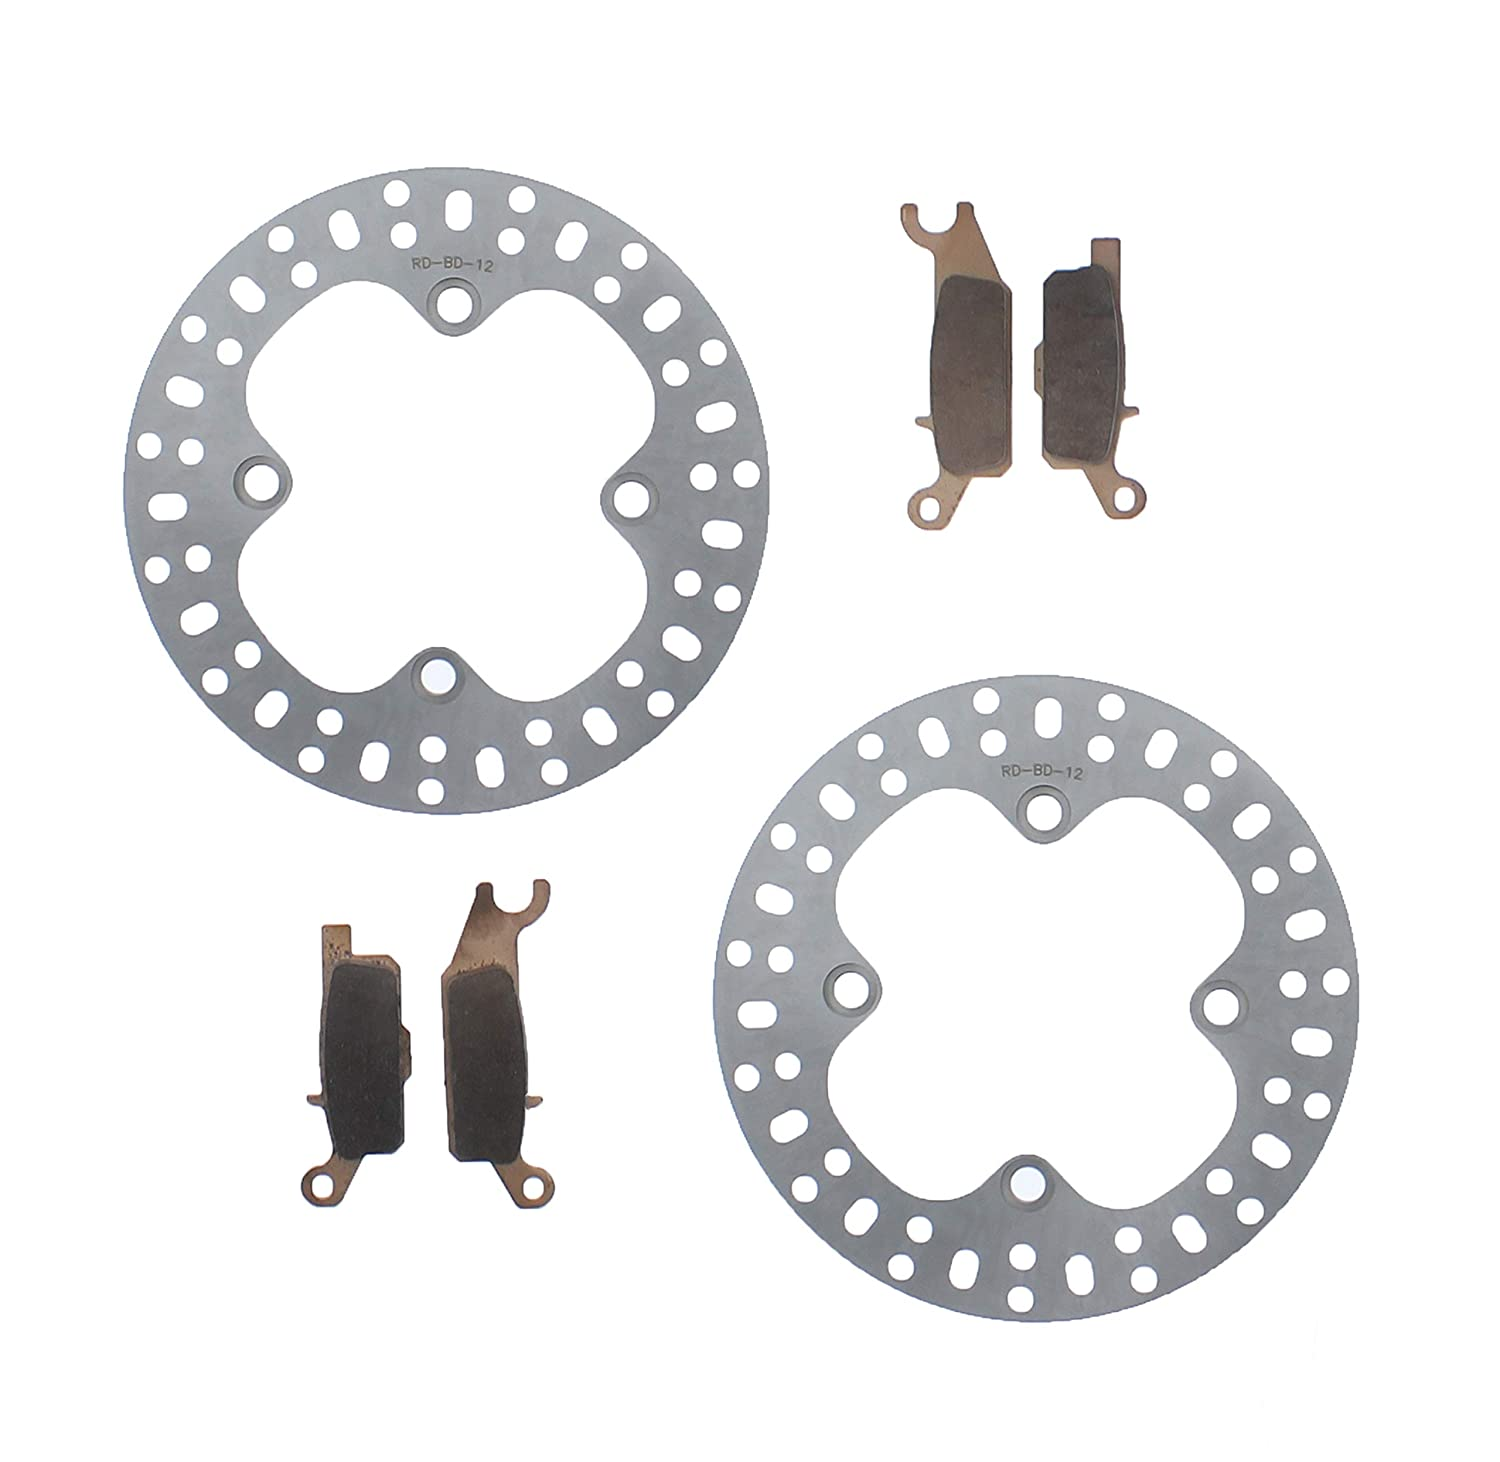 Race Driven Yamaha Rear Severe Duty Brake Pads & Brake Rotors Discs for ATV UTV Race-Driven